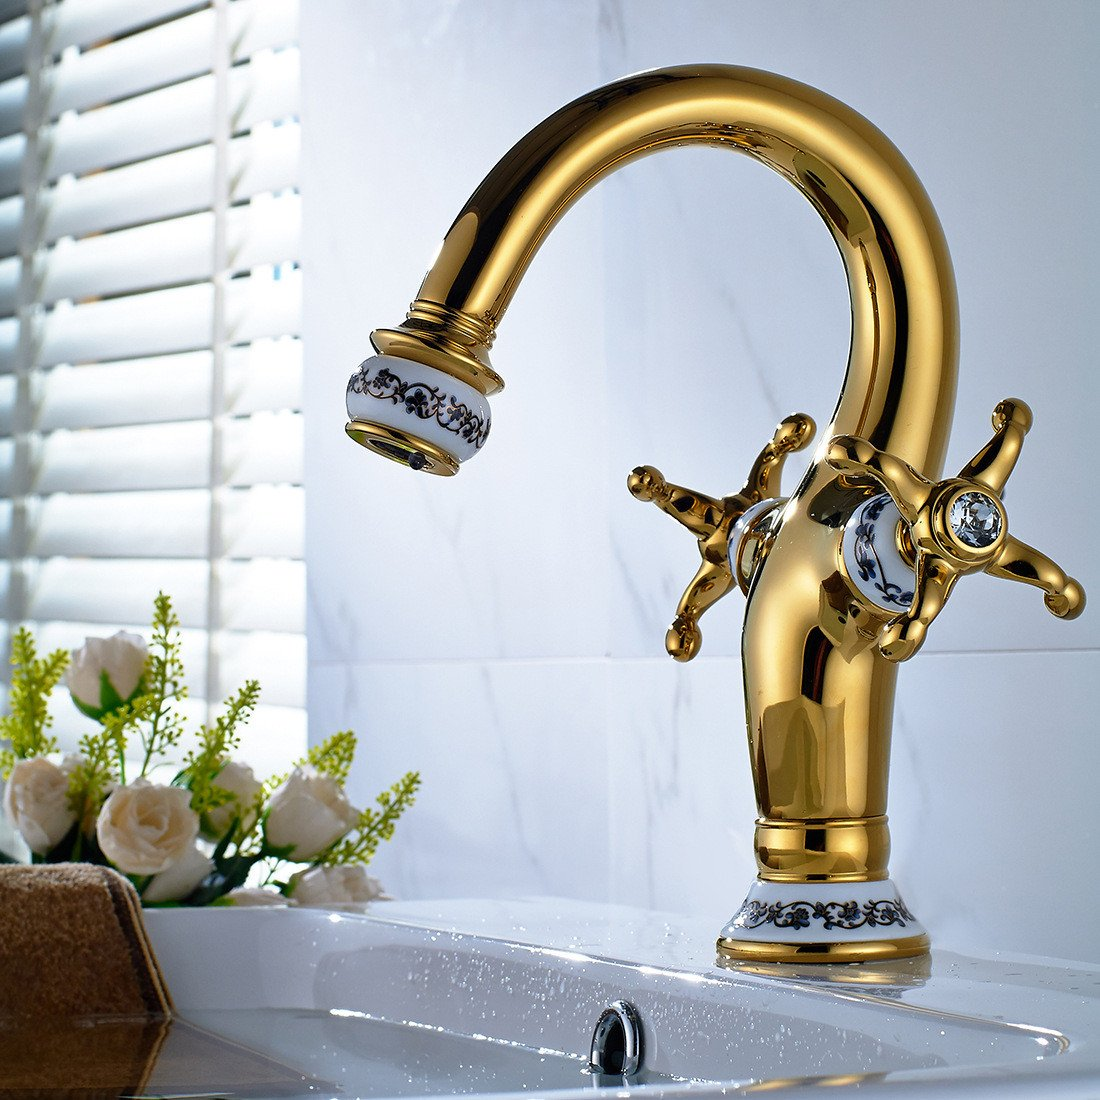 30 LHbox Basin Mixer Tap Bathroom Sink Faucet The golden basin Faucet 67